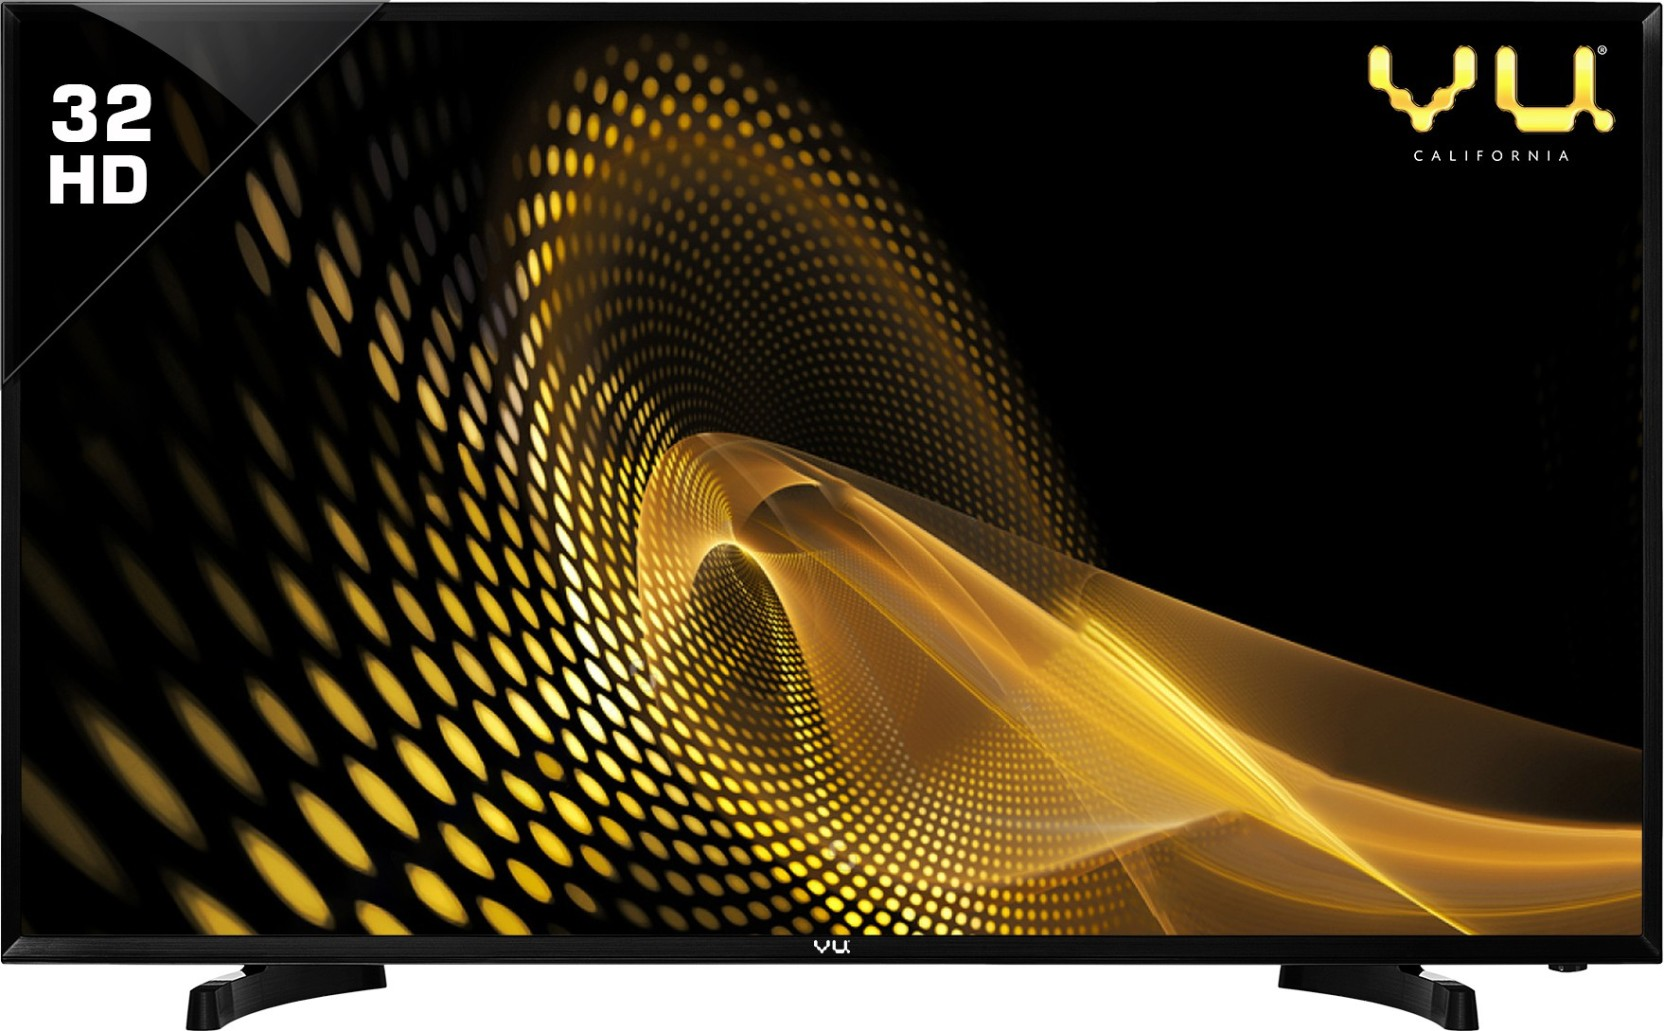 Buy Vu 80cm 32 Full Hd Led Tv At Best Prices Online In India Circuit Board Repair As Well Samsung Schematic Diagram On Offer